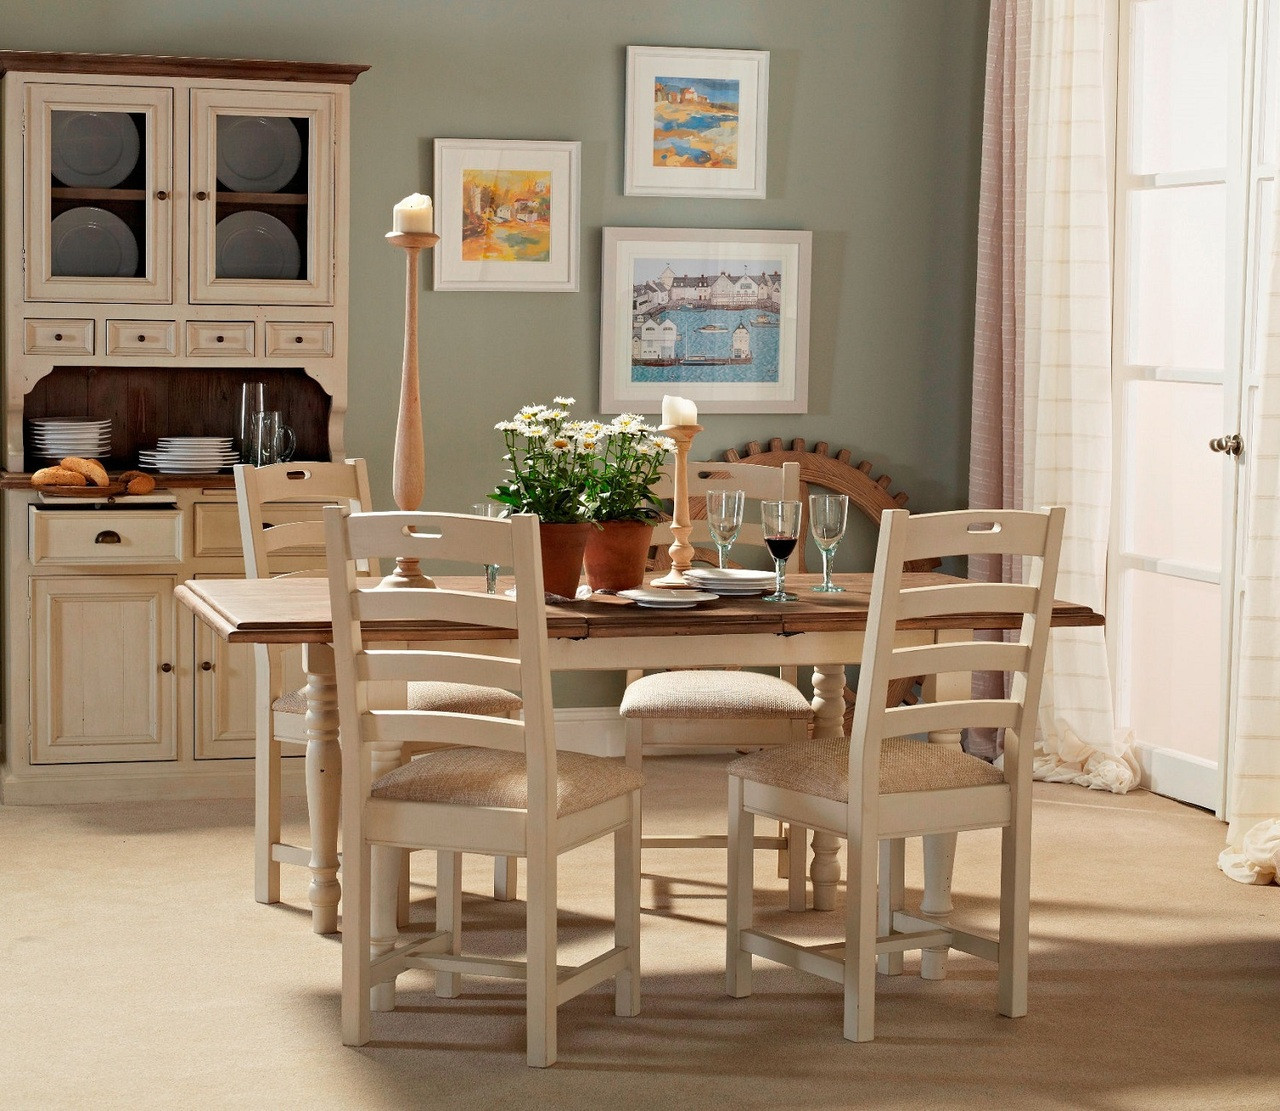 28 Cottage White Extendable Dining Room Whitesburg  : CottageExtensionWhiteDiningRoomTables64286142505580912801280 from www.tpod.us size 1280 x 1111 jpeg 416kB